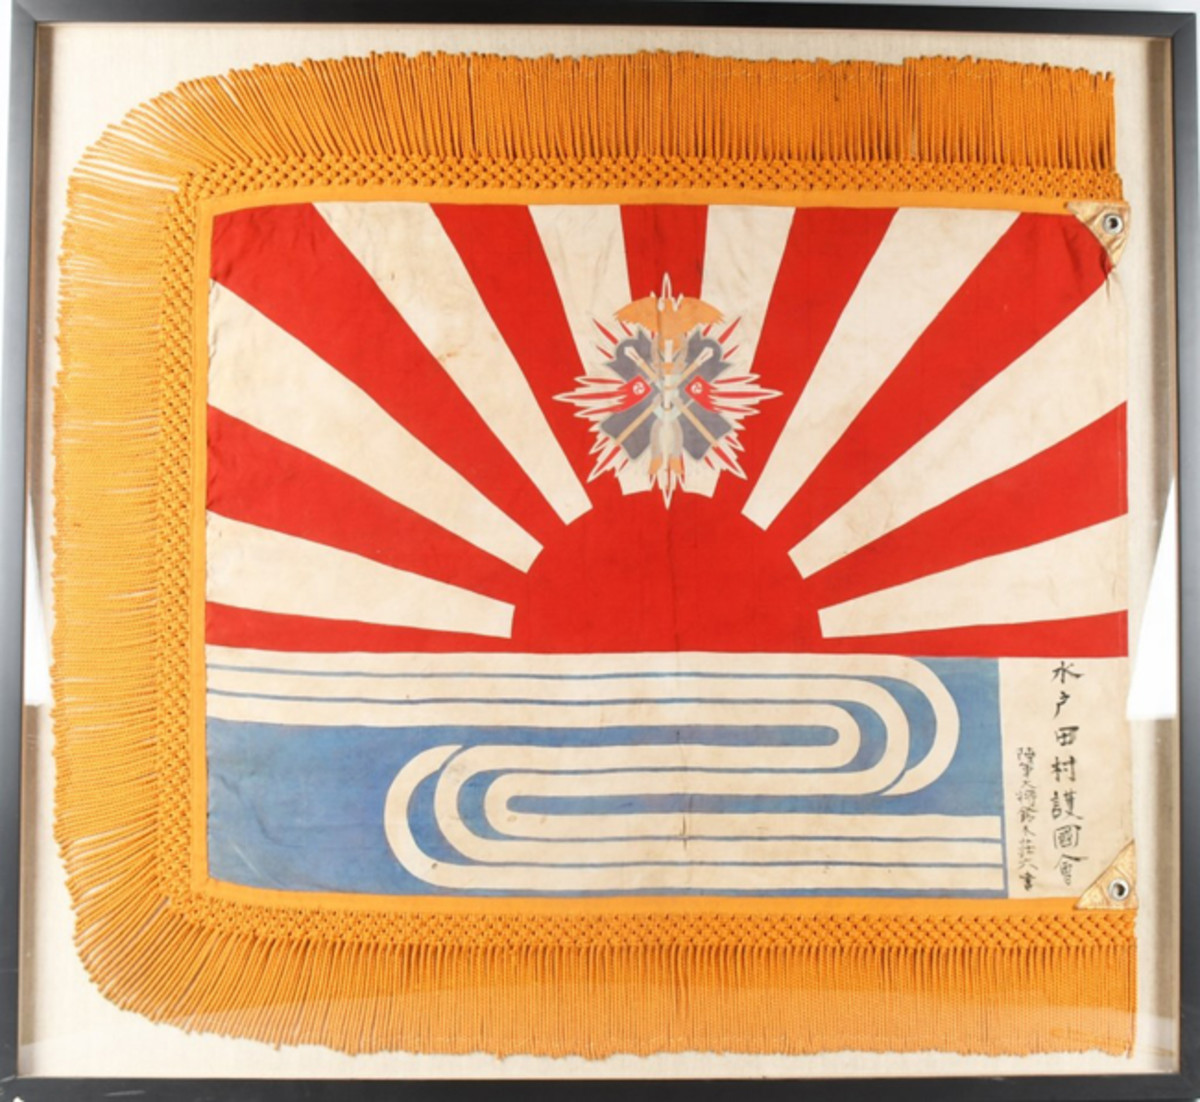 https://www.liveauctioneers.com/item/61938432_pre-wwii-japanese-chief-of-army-general-staff-flagPre-World War II personal flag of Japanese Chief of Army General Suzuki Soroku, who served in that capacity from 1926-1930, $3,360